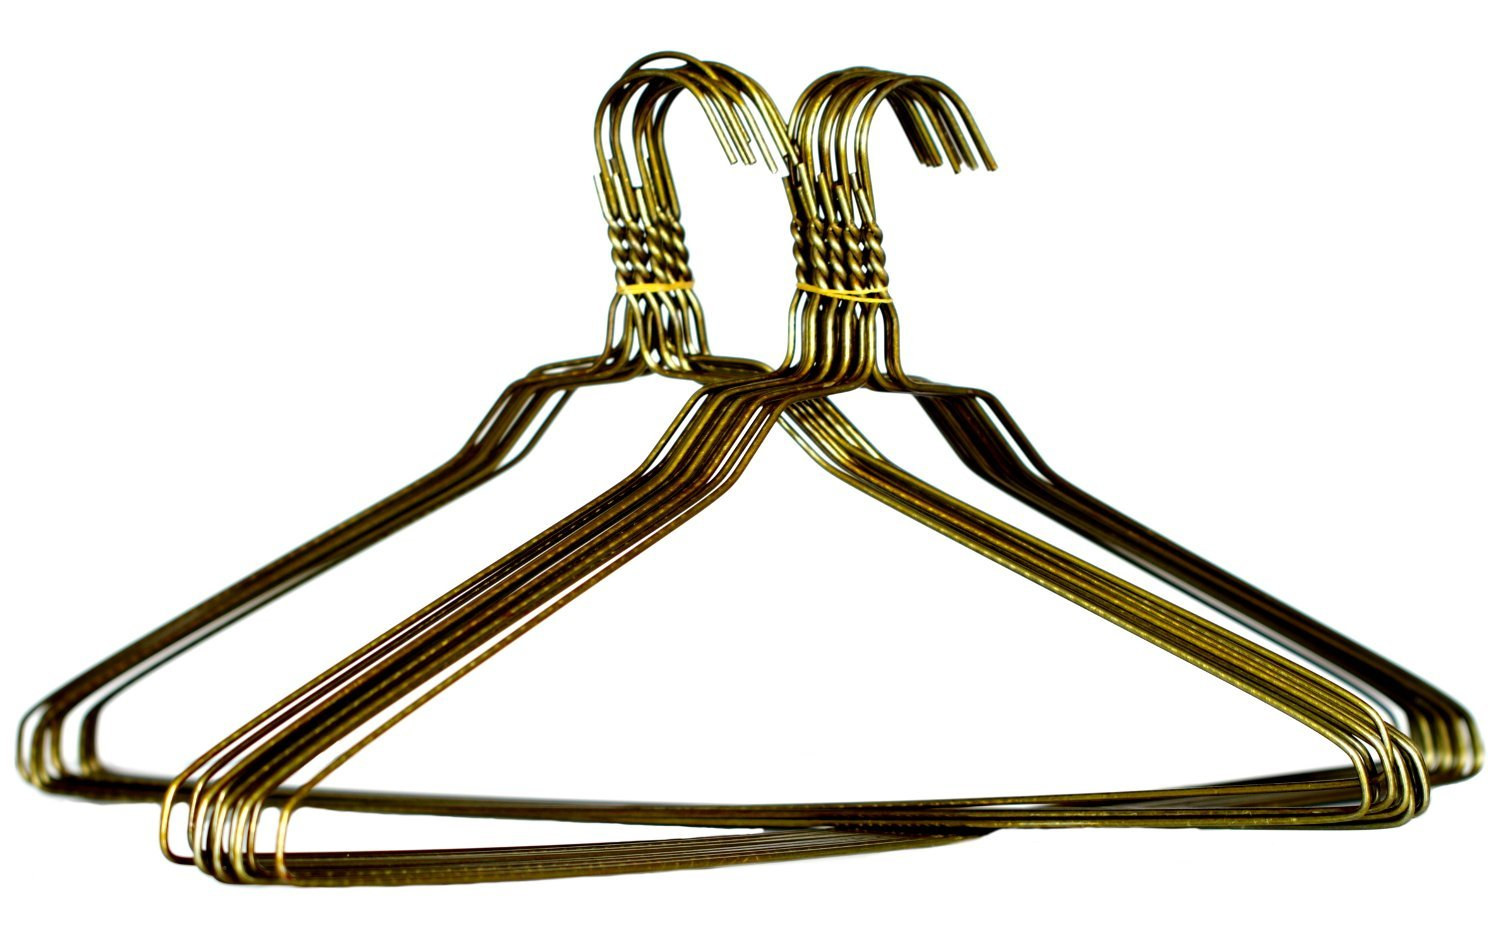 Briausa 50 Coat Hangers Jacket Heavy Duty 11 5 Gauge Metal Gold Wire 18 Inch Clothes